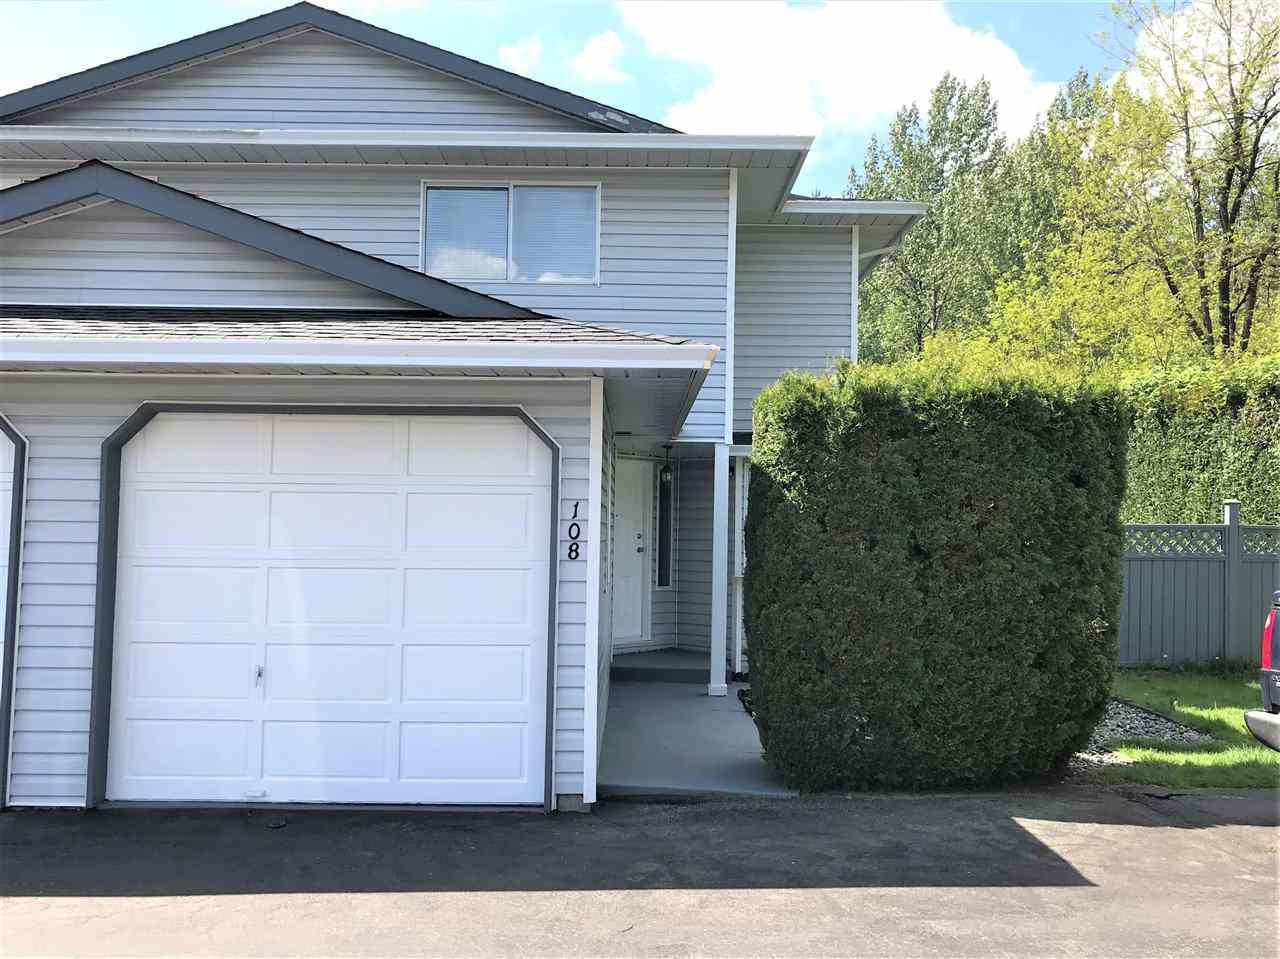 """Main Photo: 108 11255 HARRISON Street in Maple Ridge: East Central Townhouse for sale in """"RIVER HEIGHTS"""" : MLS®# R2579437"""